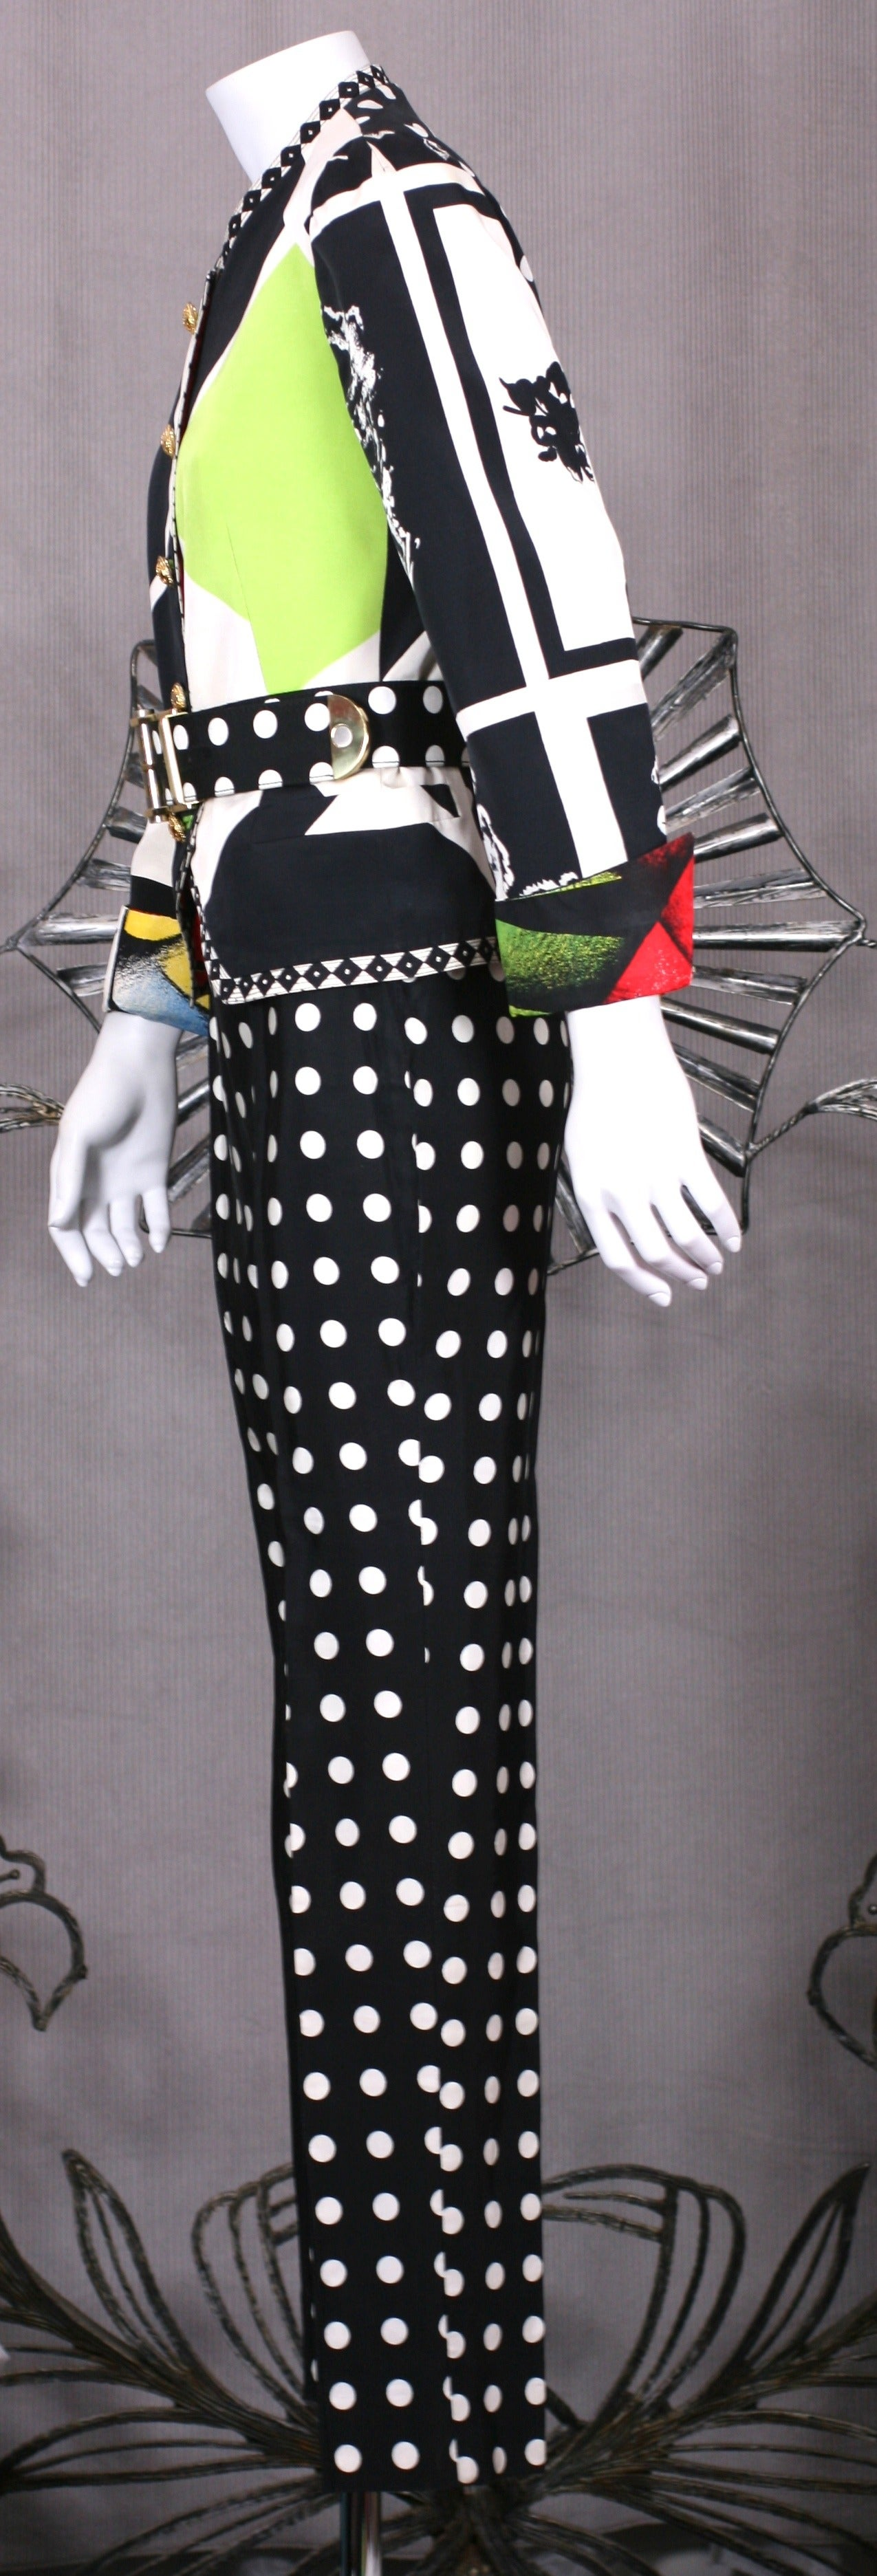 Versace Black and White Graphic Suit In Good Condition For Sale In Riverdale, NY